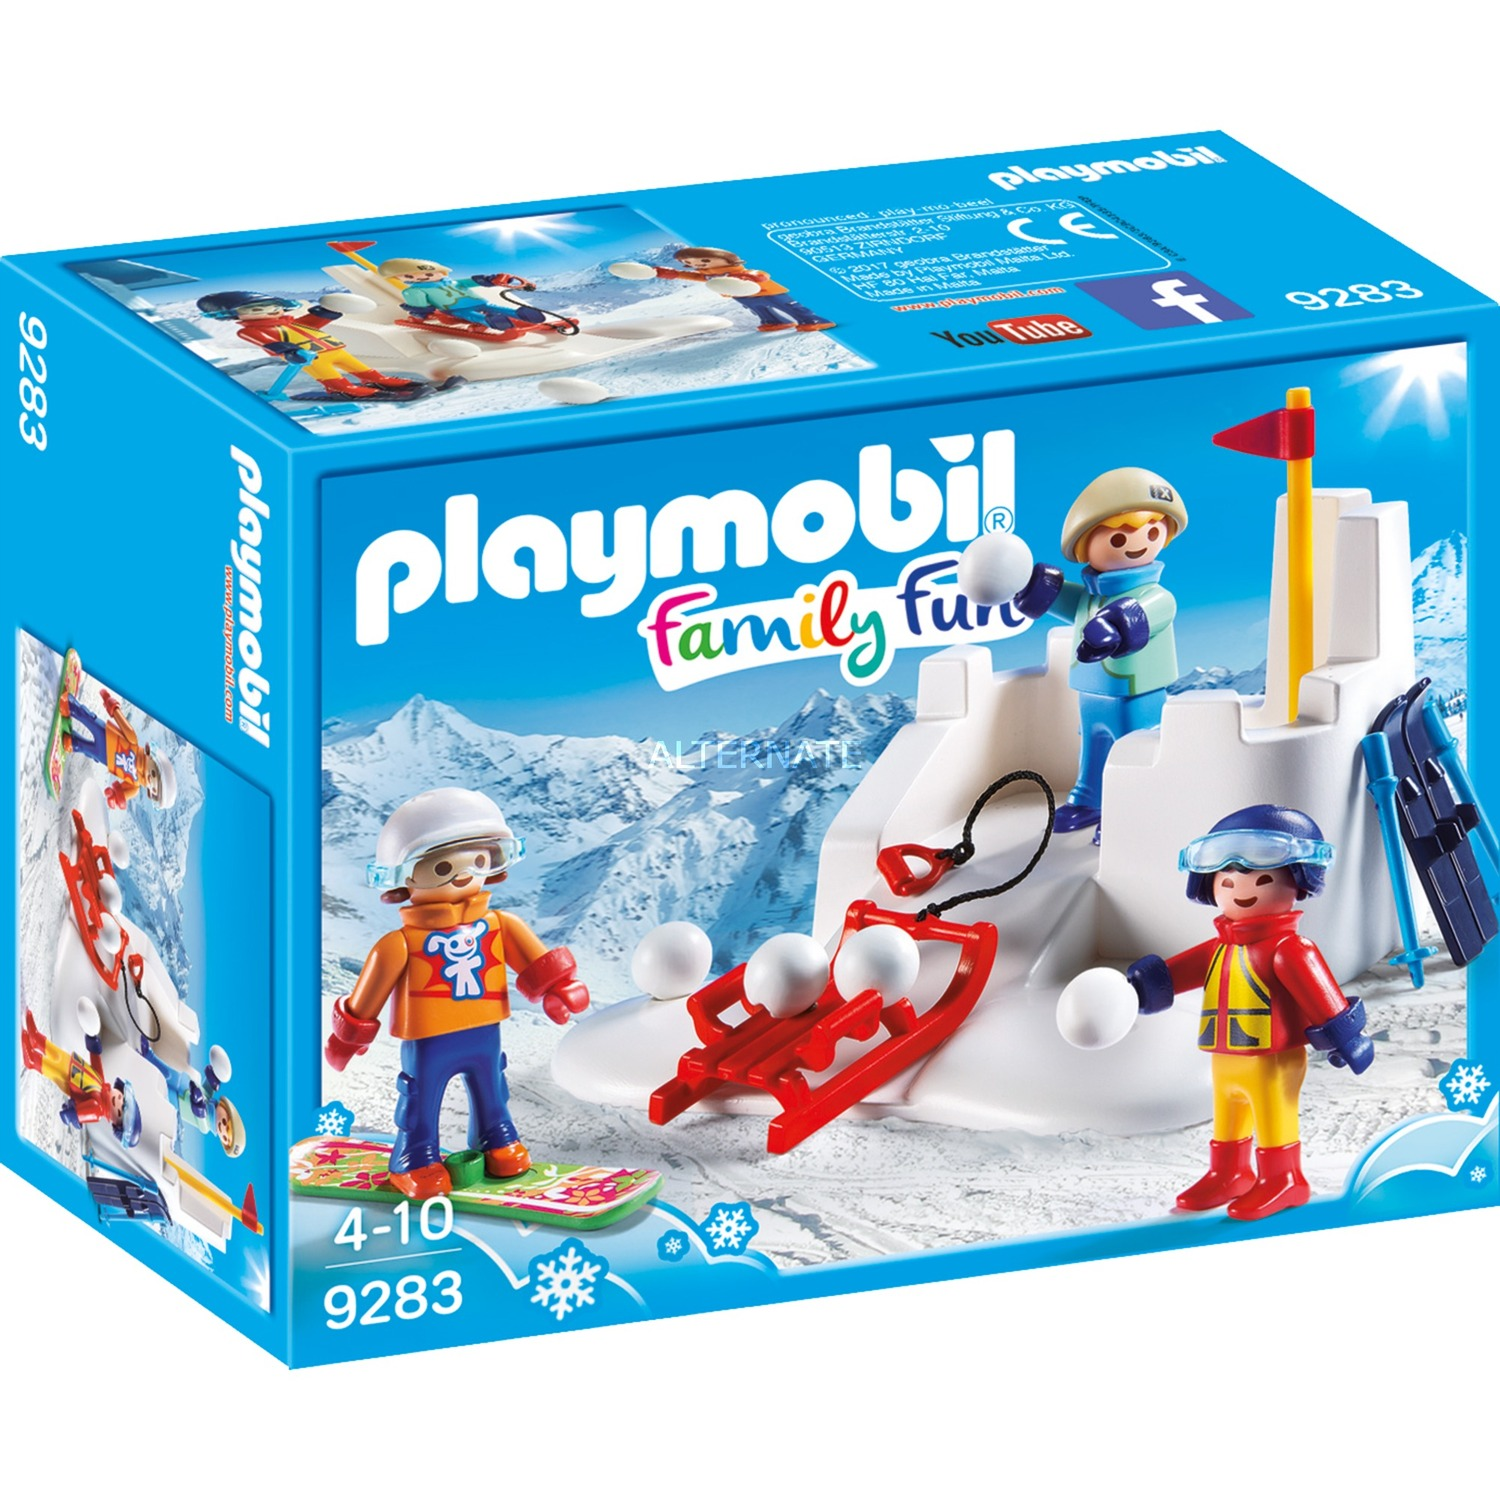 playmobil familyfun 9283 garonfille coffret de figurines jouets de construction 4 annes garonfille bleu orange rouge blanc jaune - Play Mobile Fille